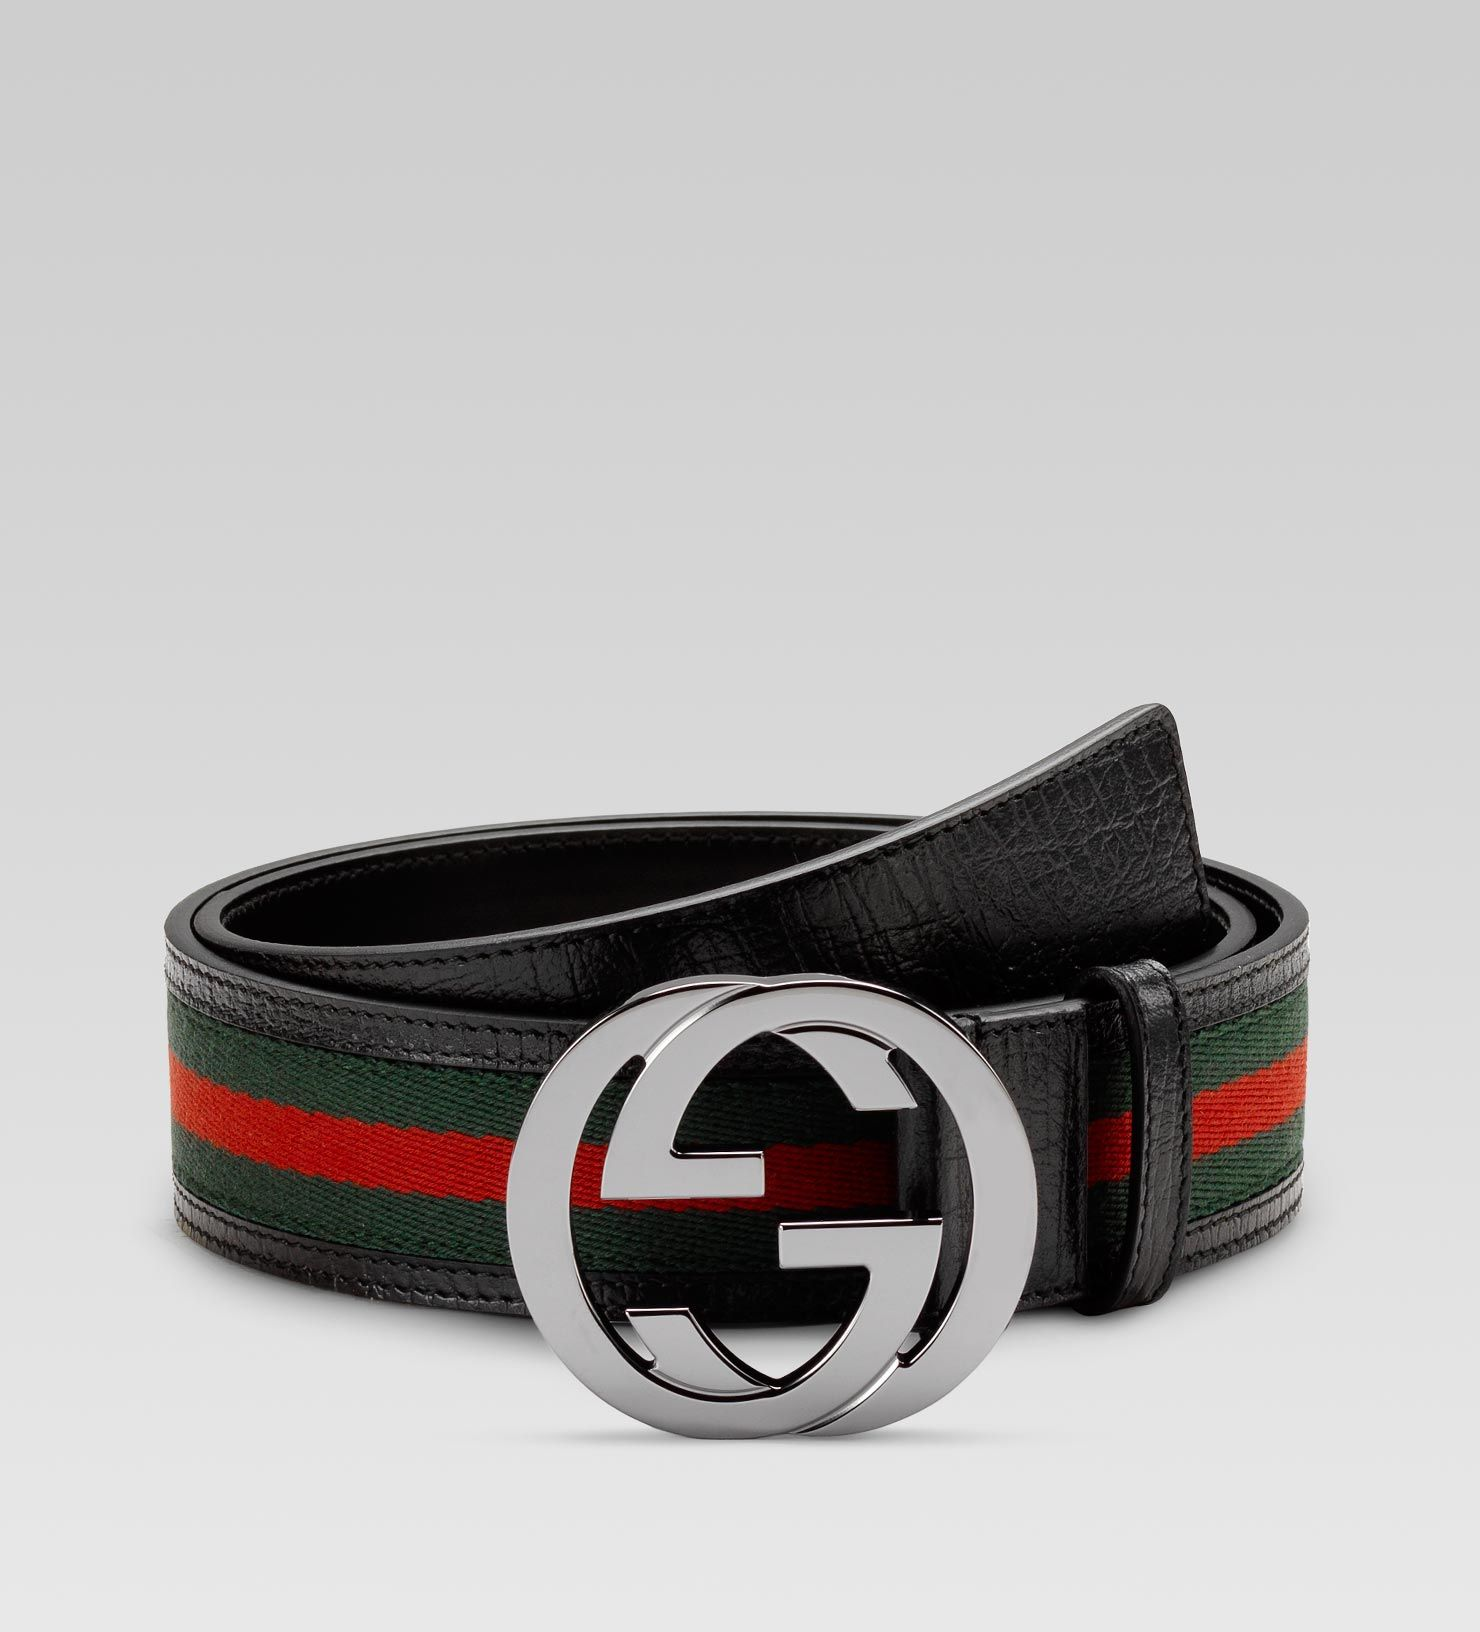 4d84ec4a73b belt  green red green signature web fabric with black leather trim. Gucci.